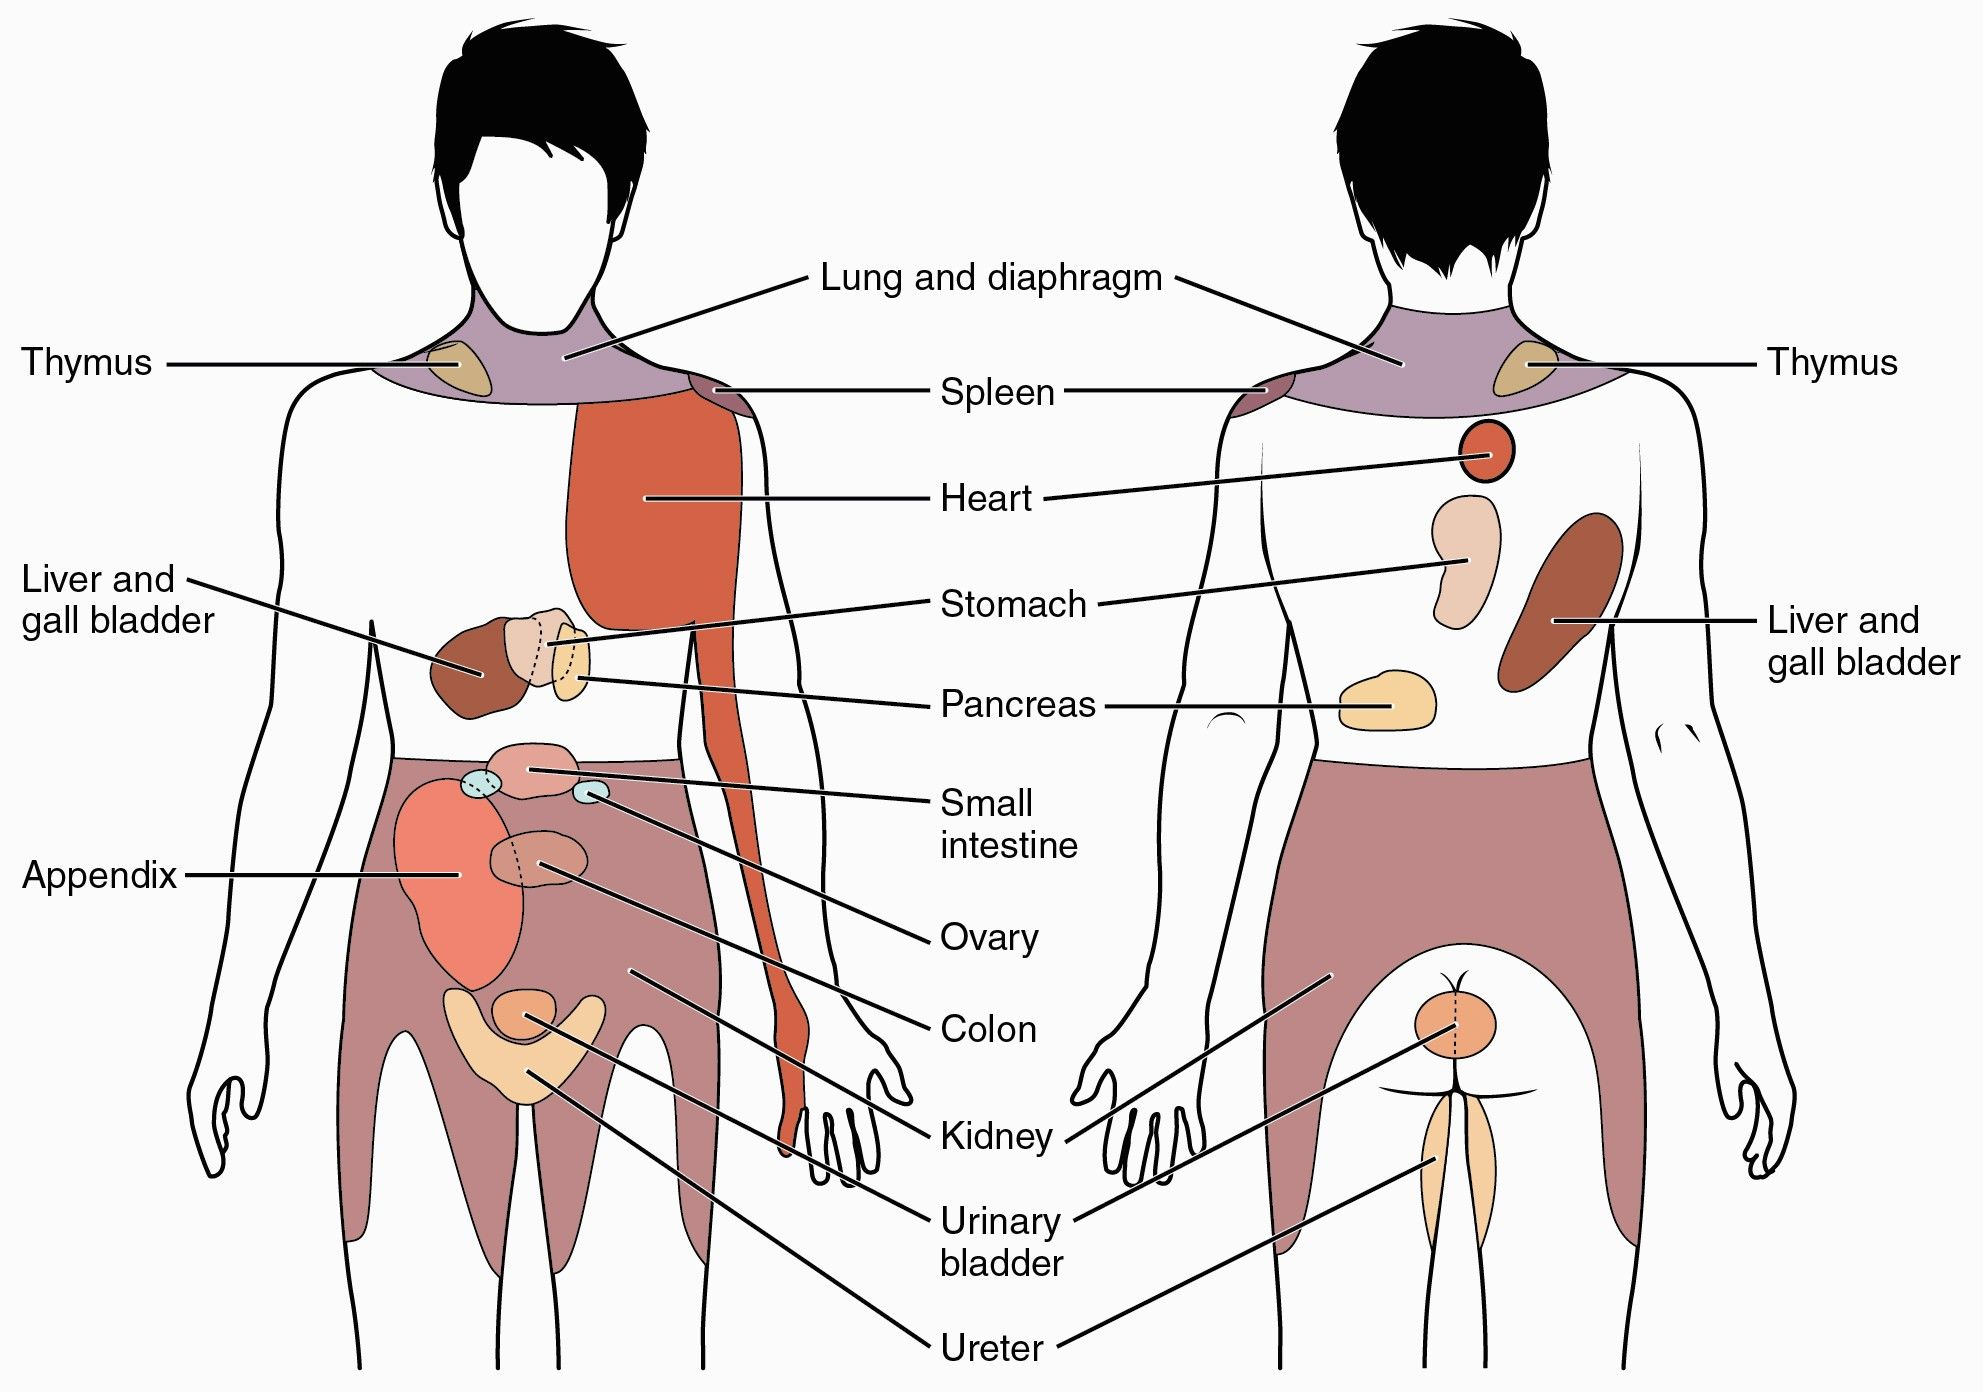 anatomy of body pain liver pain location diagram anatomy organ [ 1983 x 1392 Pixel ]